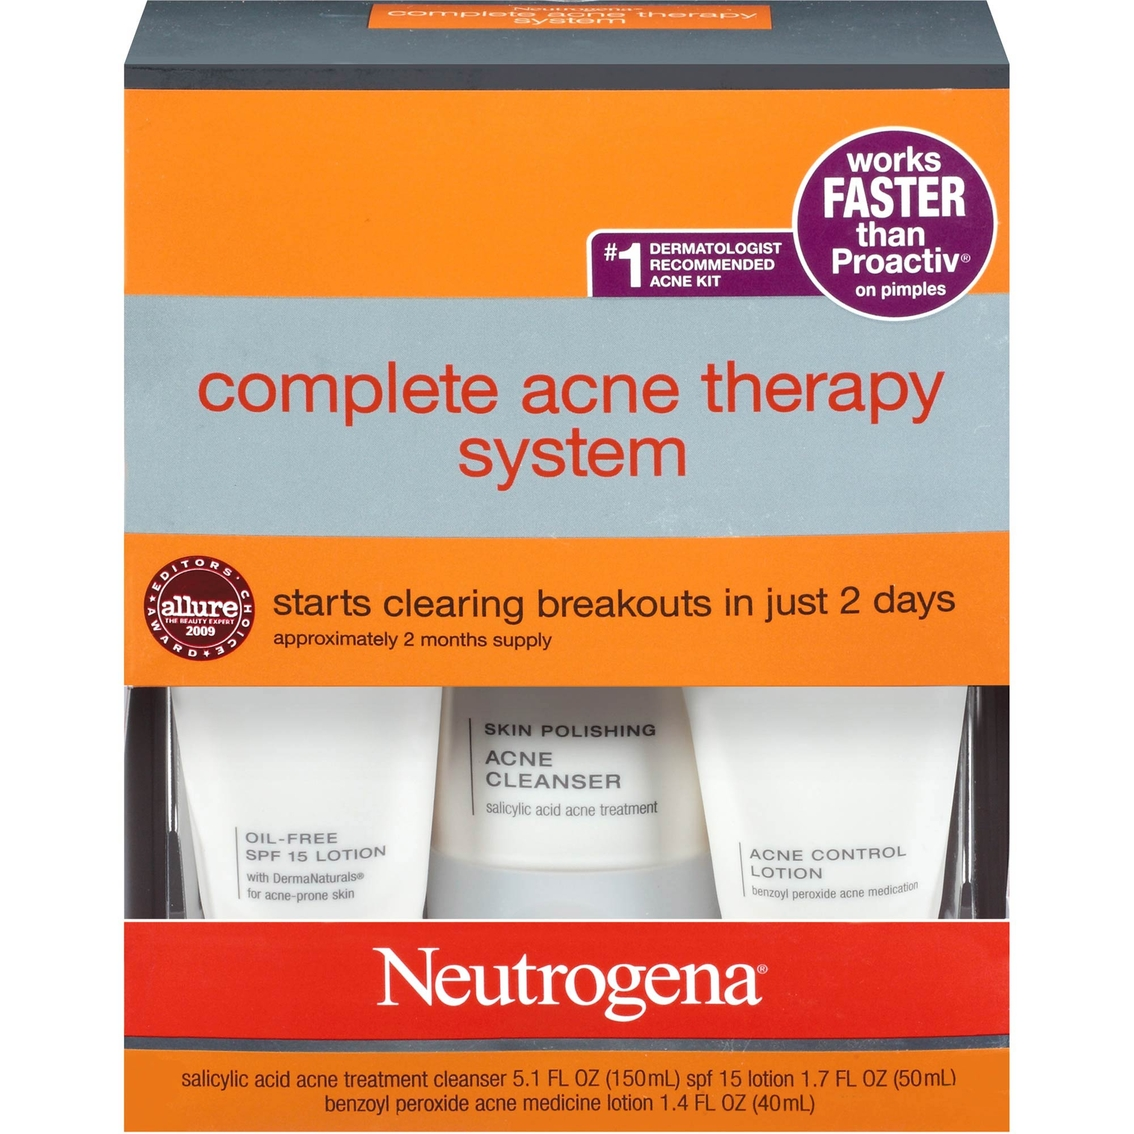 Neutrogena Acne Kit Complete Acne Therapy System Acne Treatments